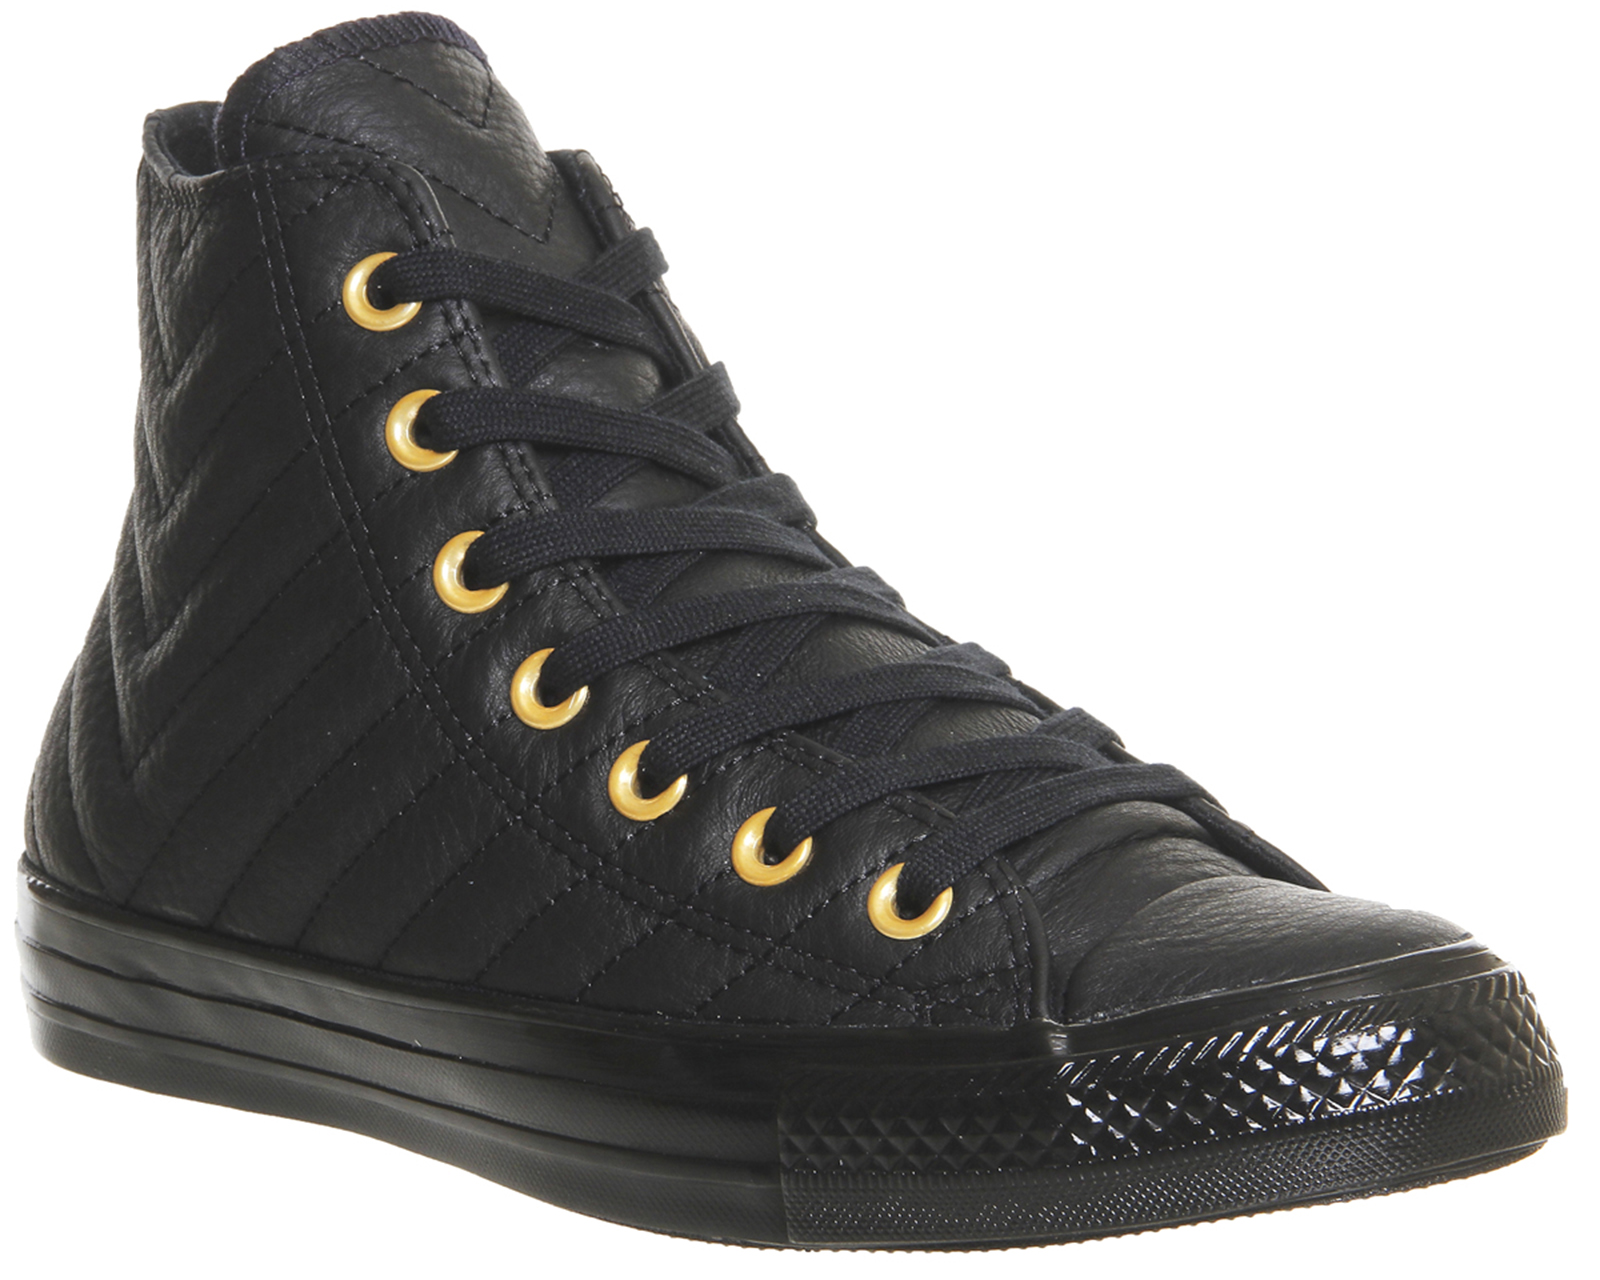 Converse Leather Sneakers Black. Mens Converse All Star Hi ... 90362b609